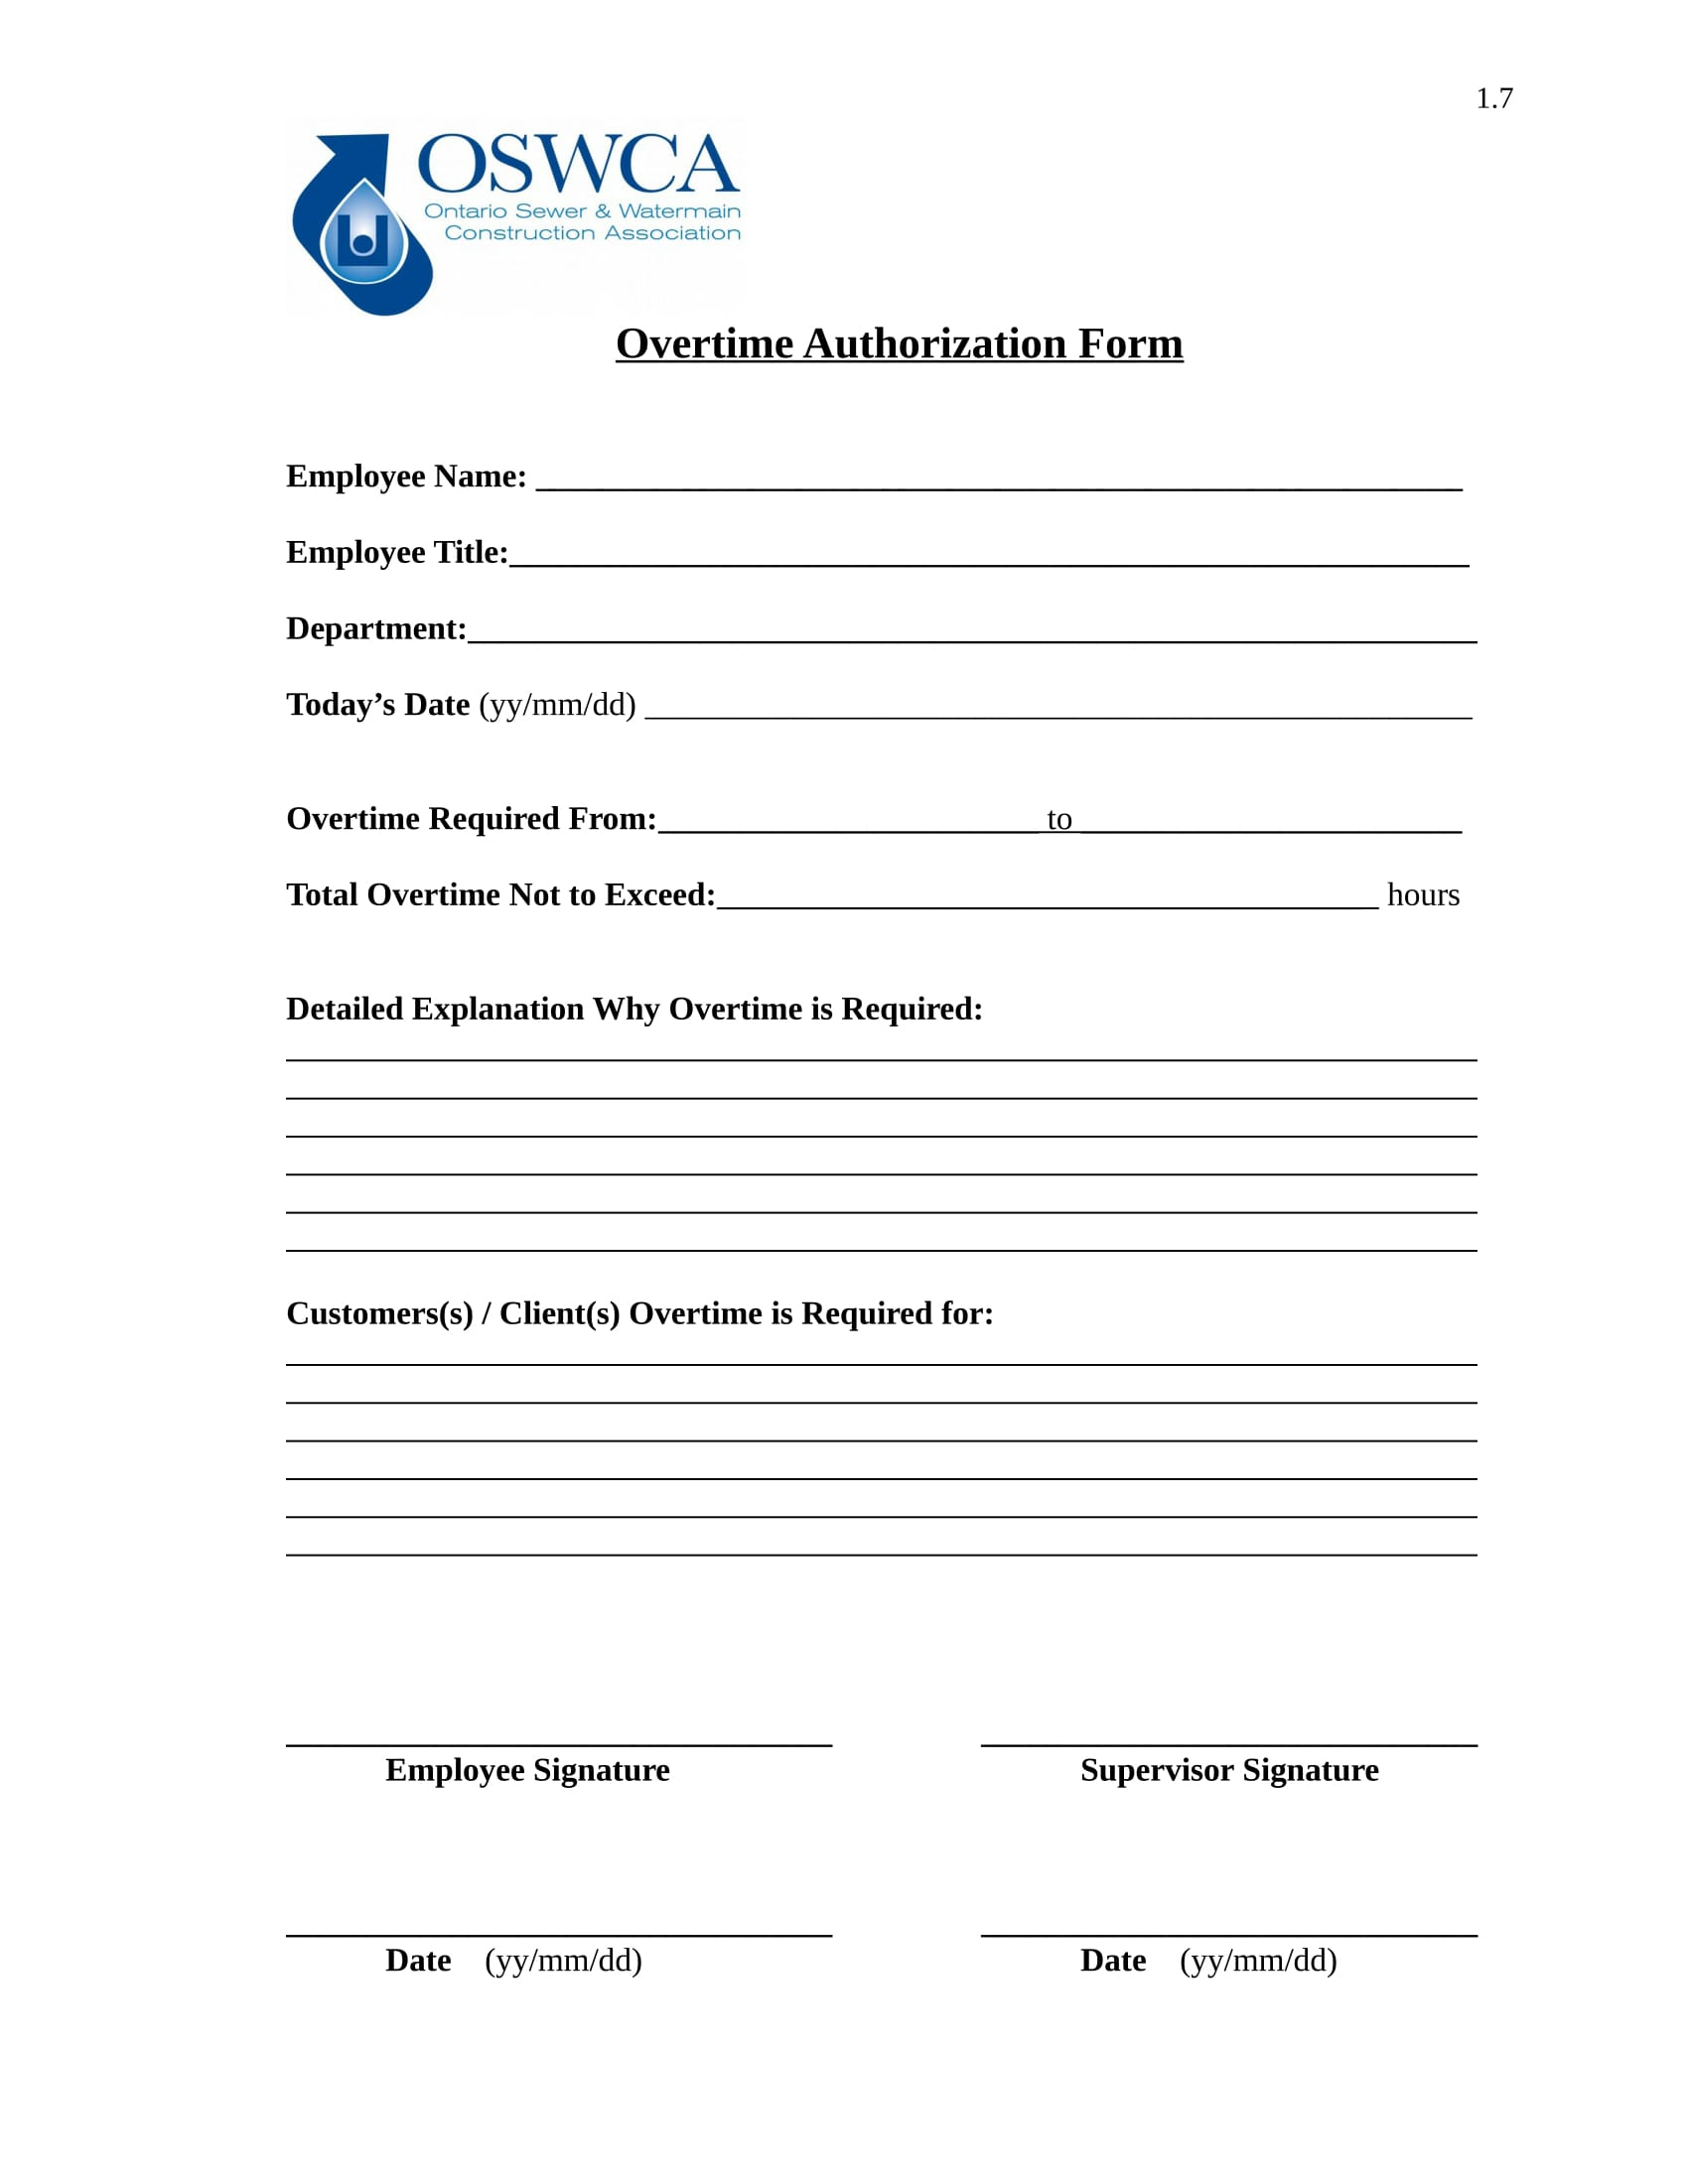 sewer employee overtime authorization form 1